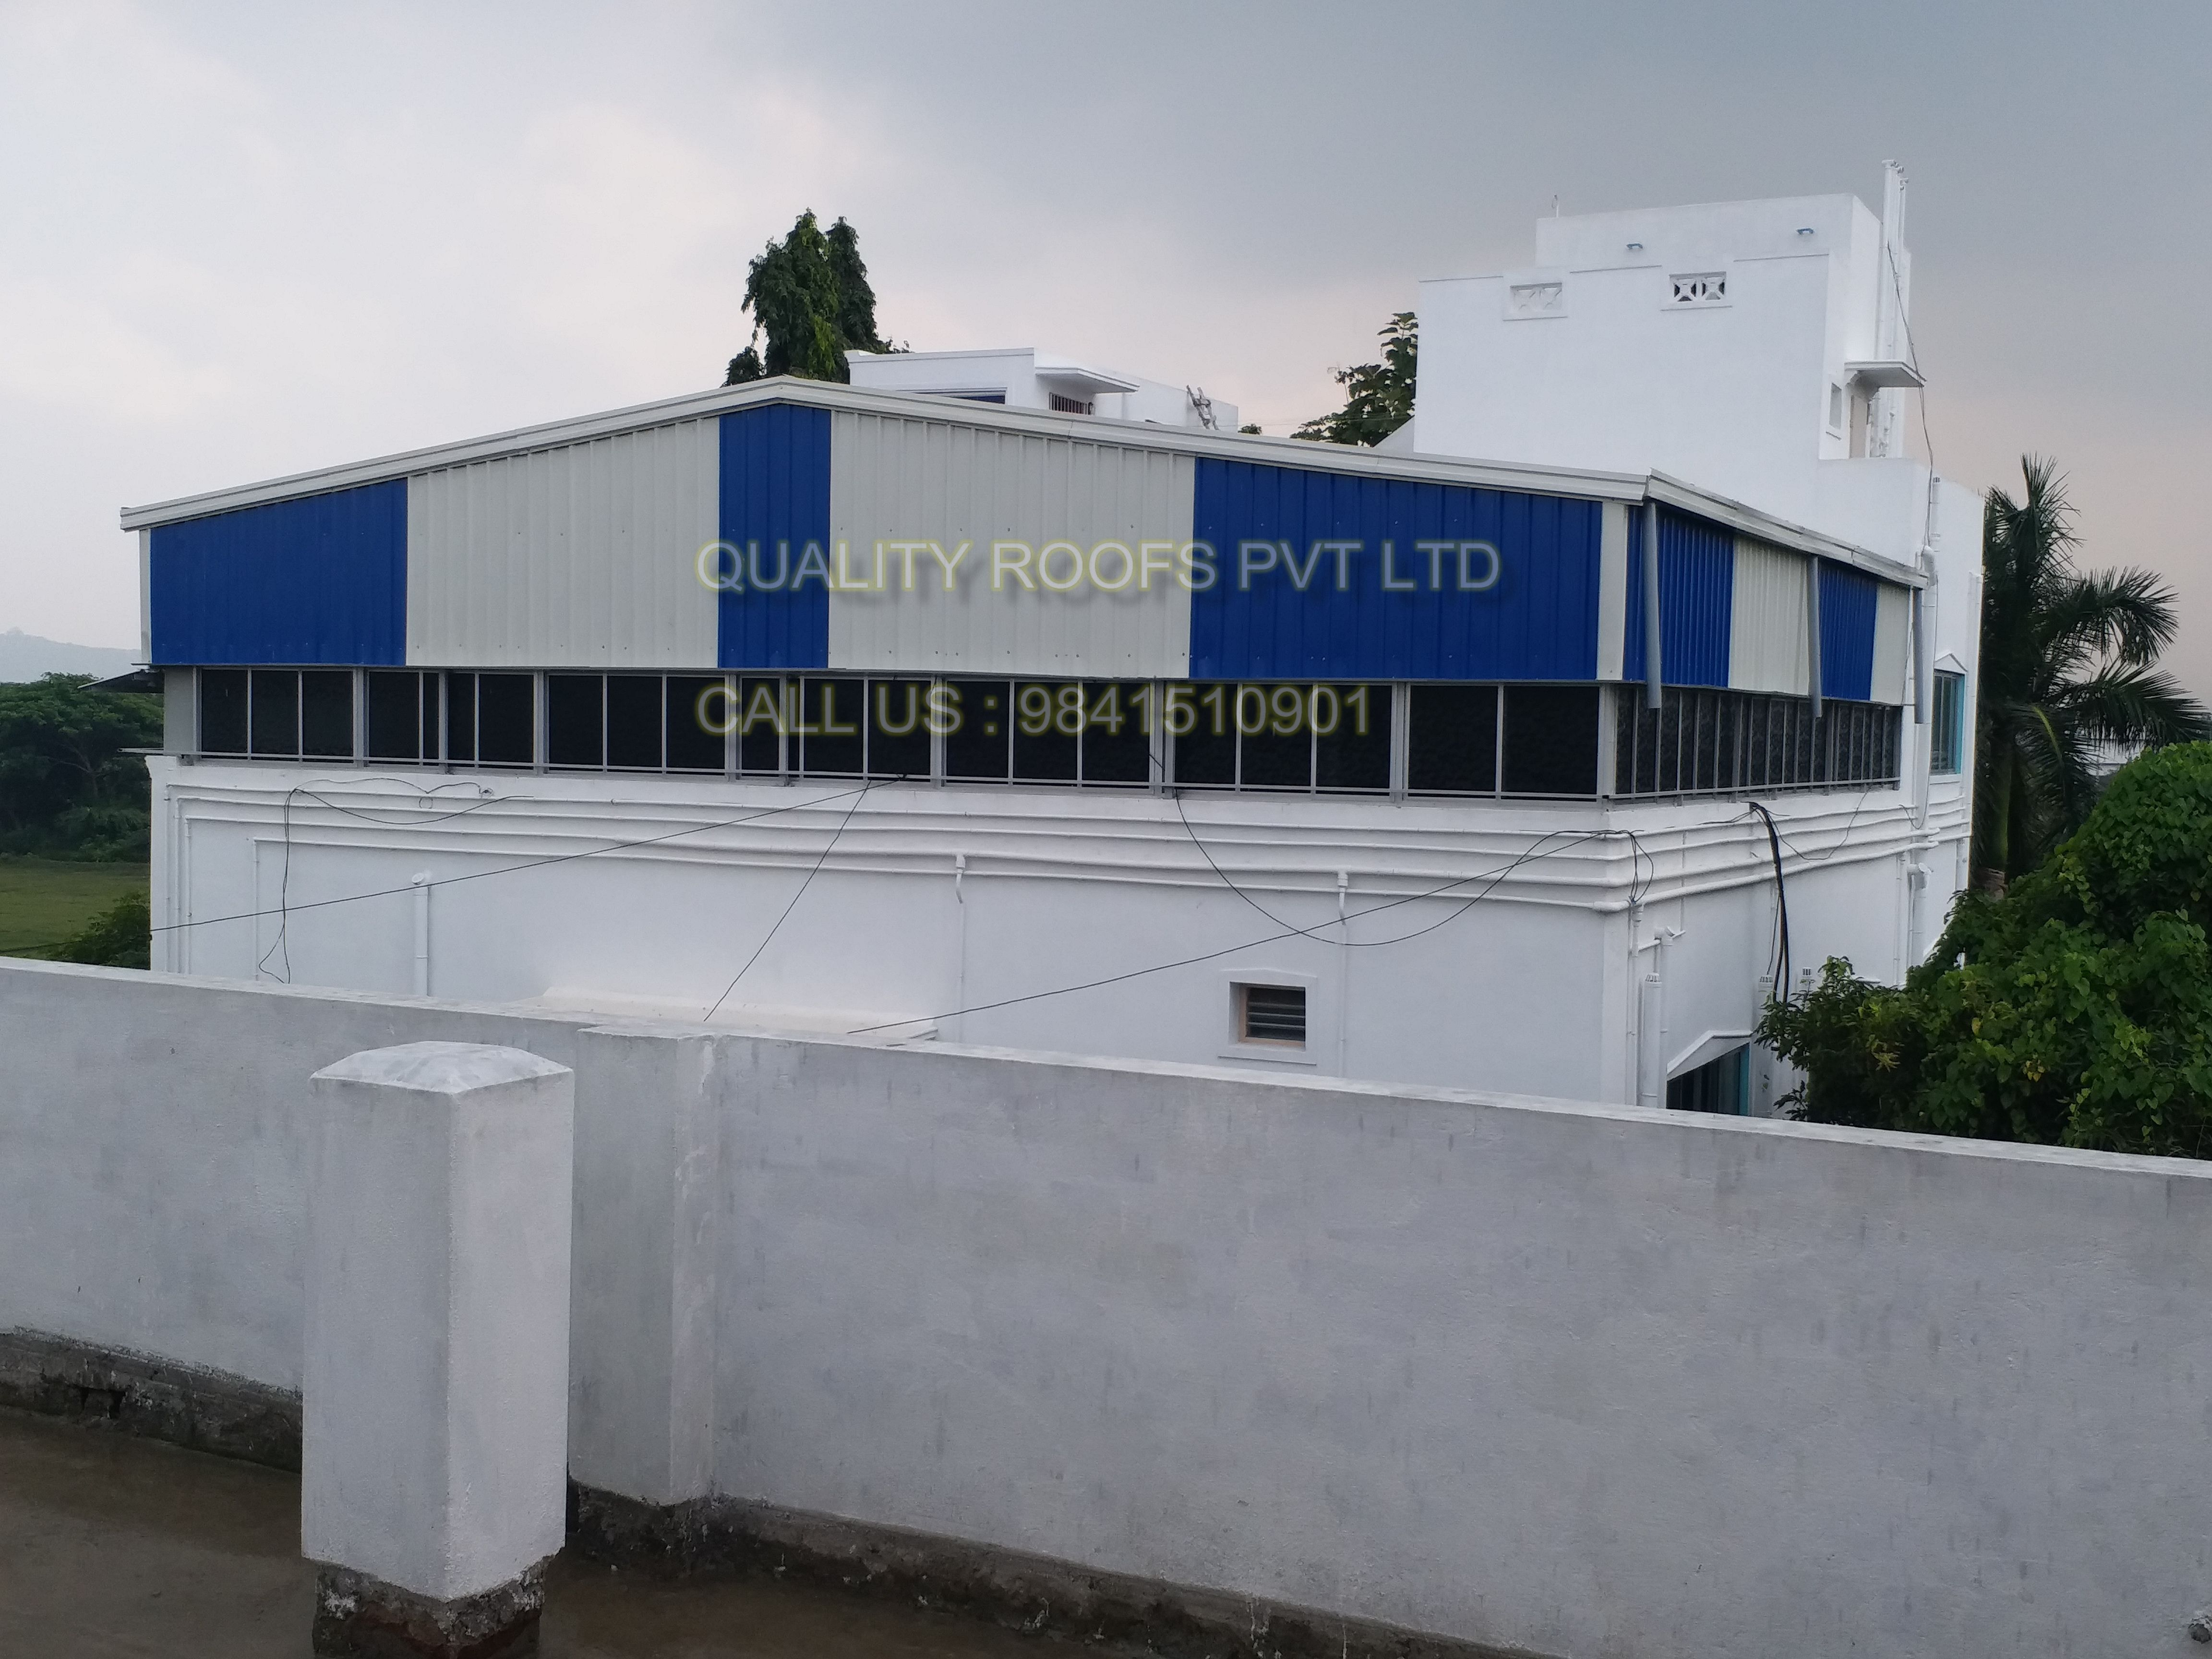 We Are Leading Terrace Roofing Contractors In Chennai Undertaking All Kinds Of Terrace Roofing Shed Works At Very Comp In 2020 Roof Design Roof Architecture Patio Roof